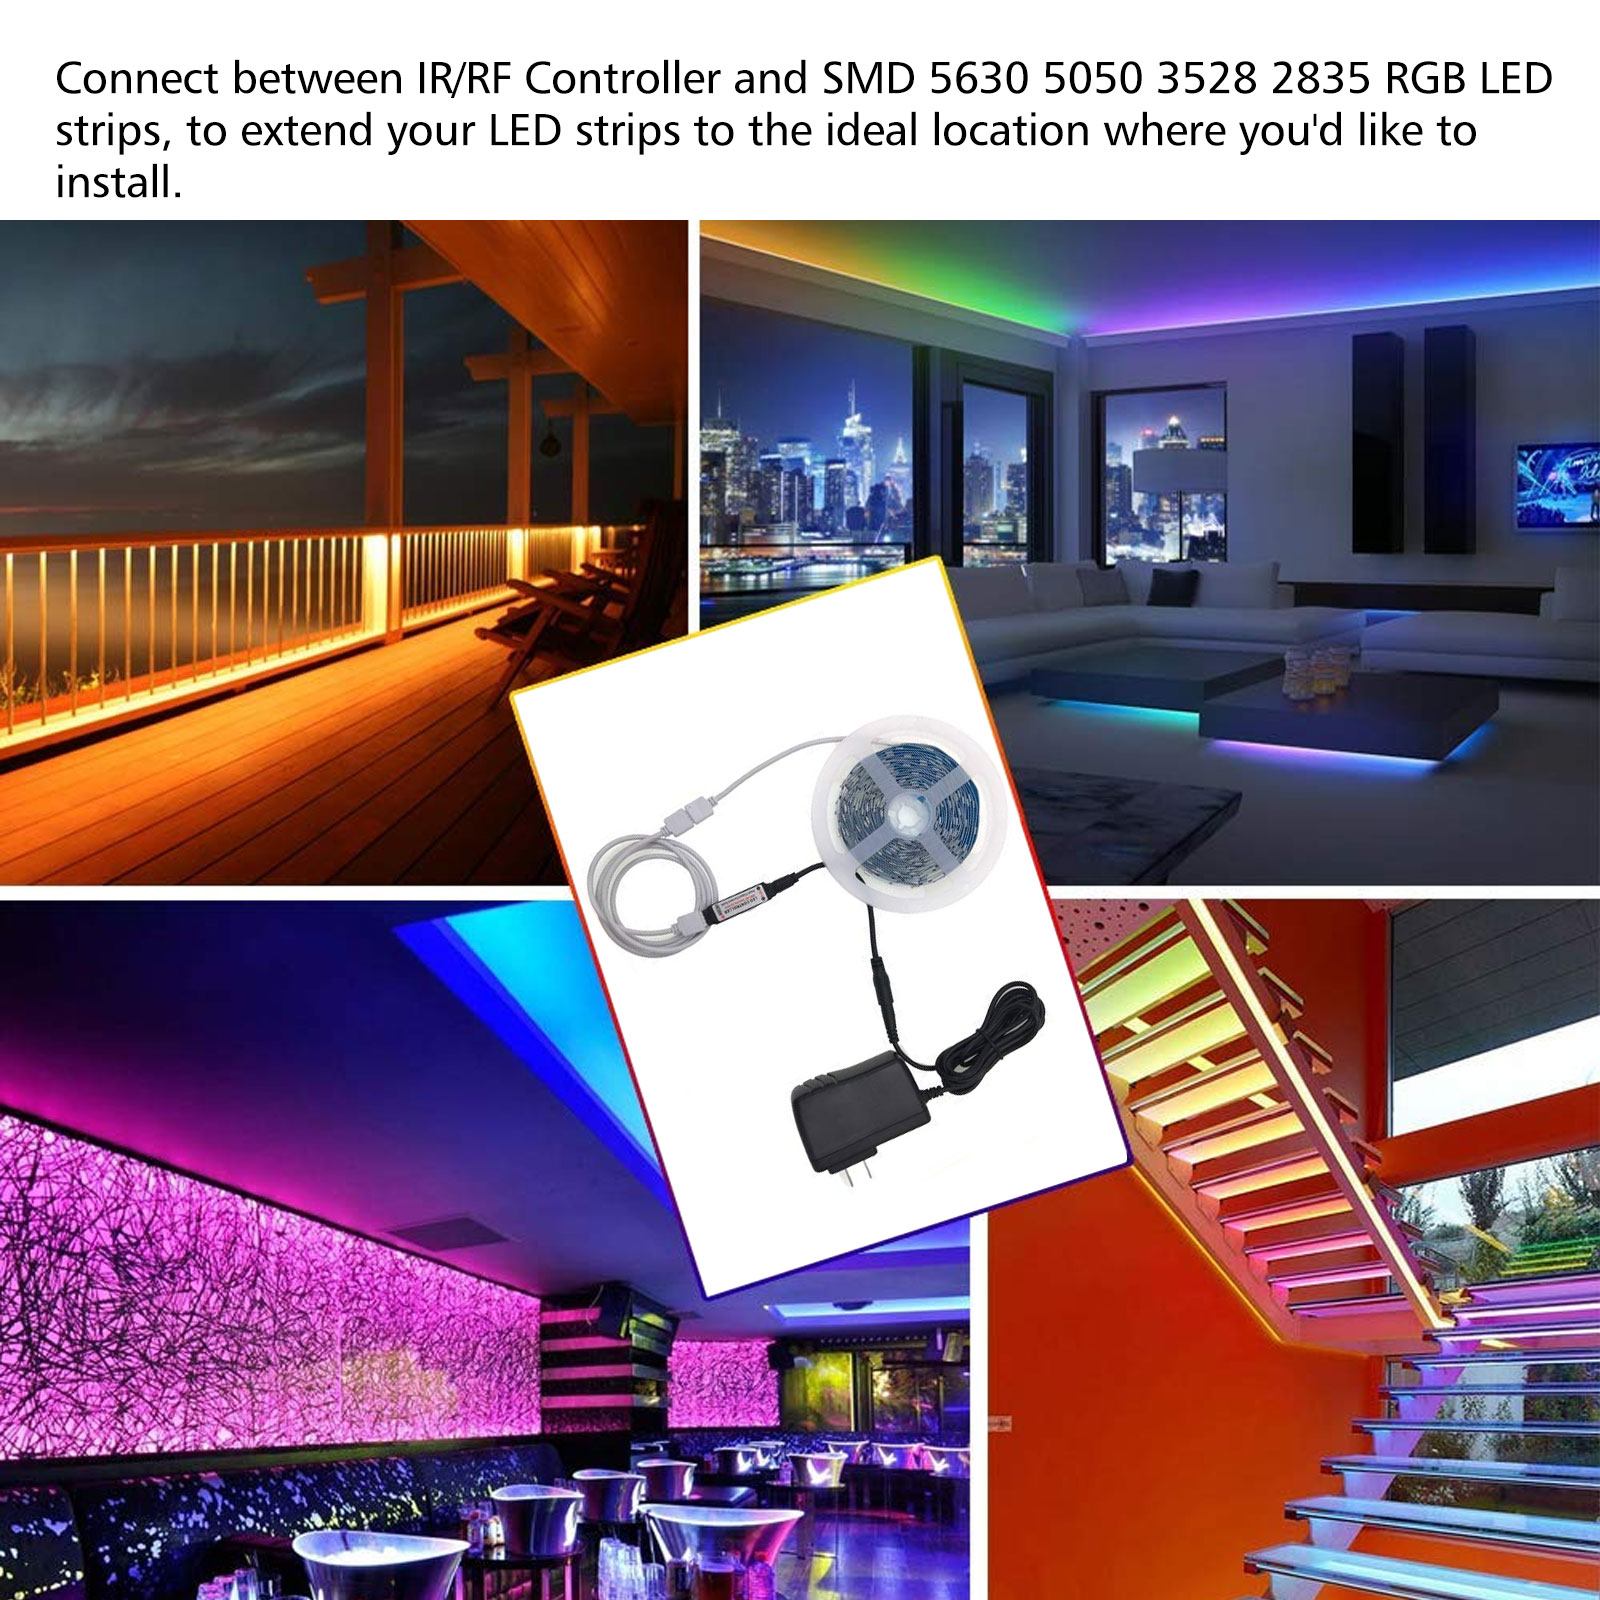 4Pin-Extension-Wire-Connector-For-SMD-LED-Strip-Light-RGB-5050-3528-Cable-Cord thumbnail 4